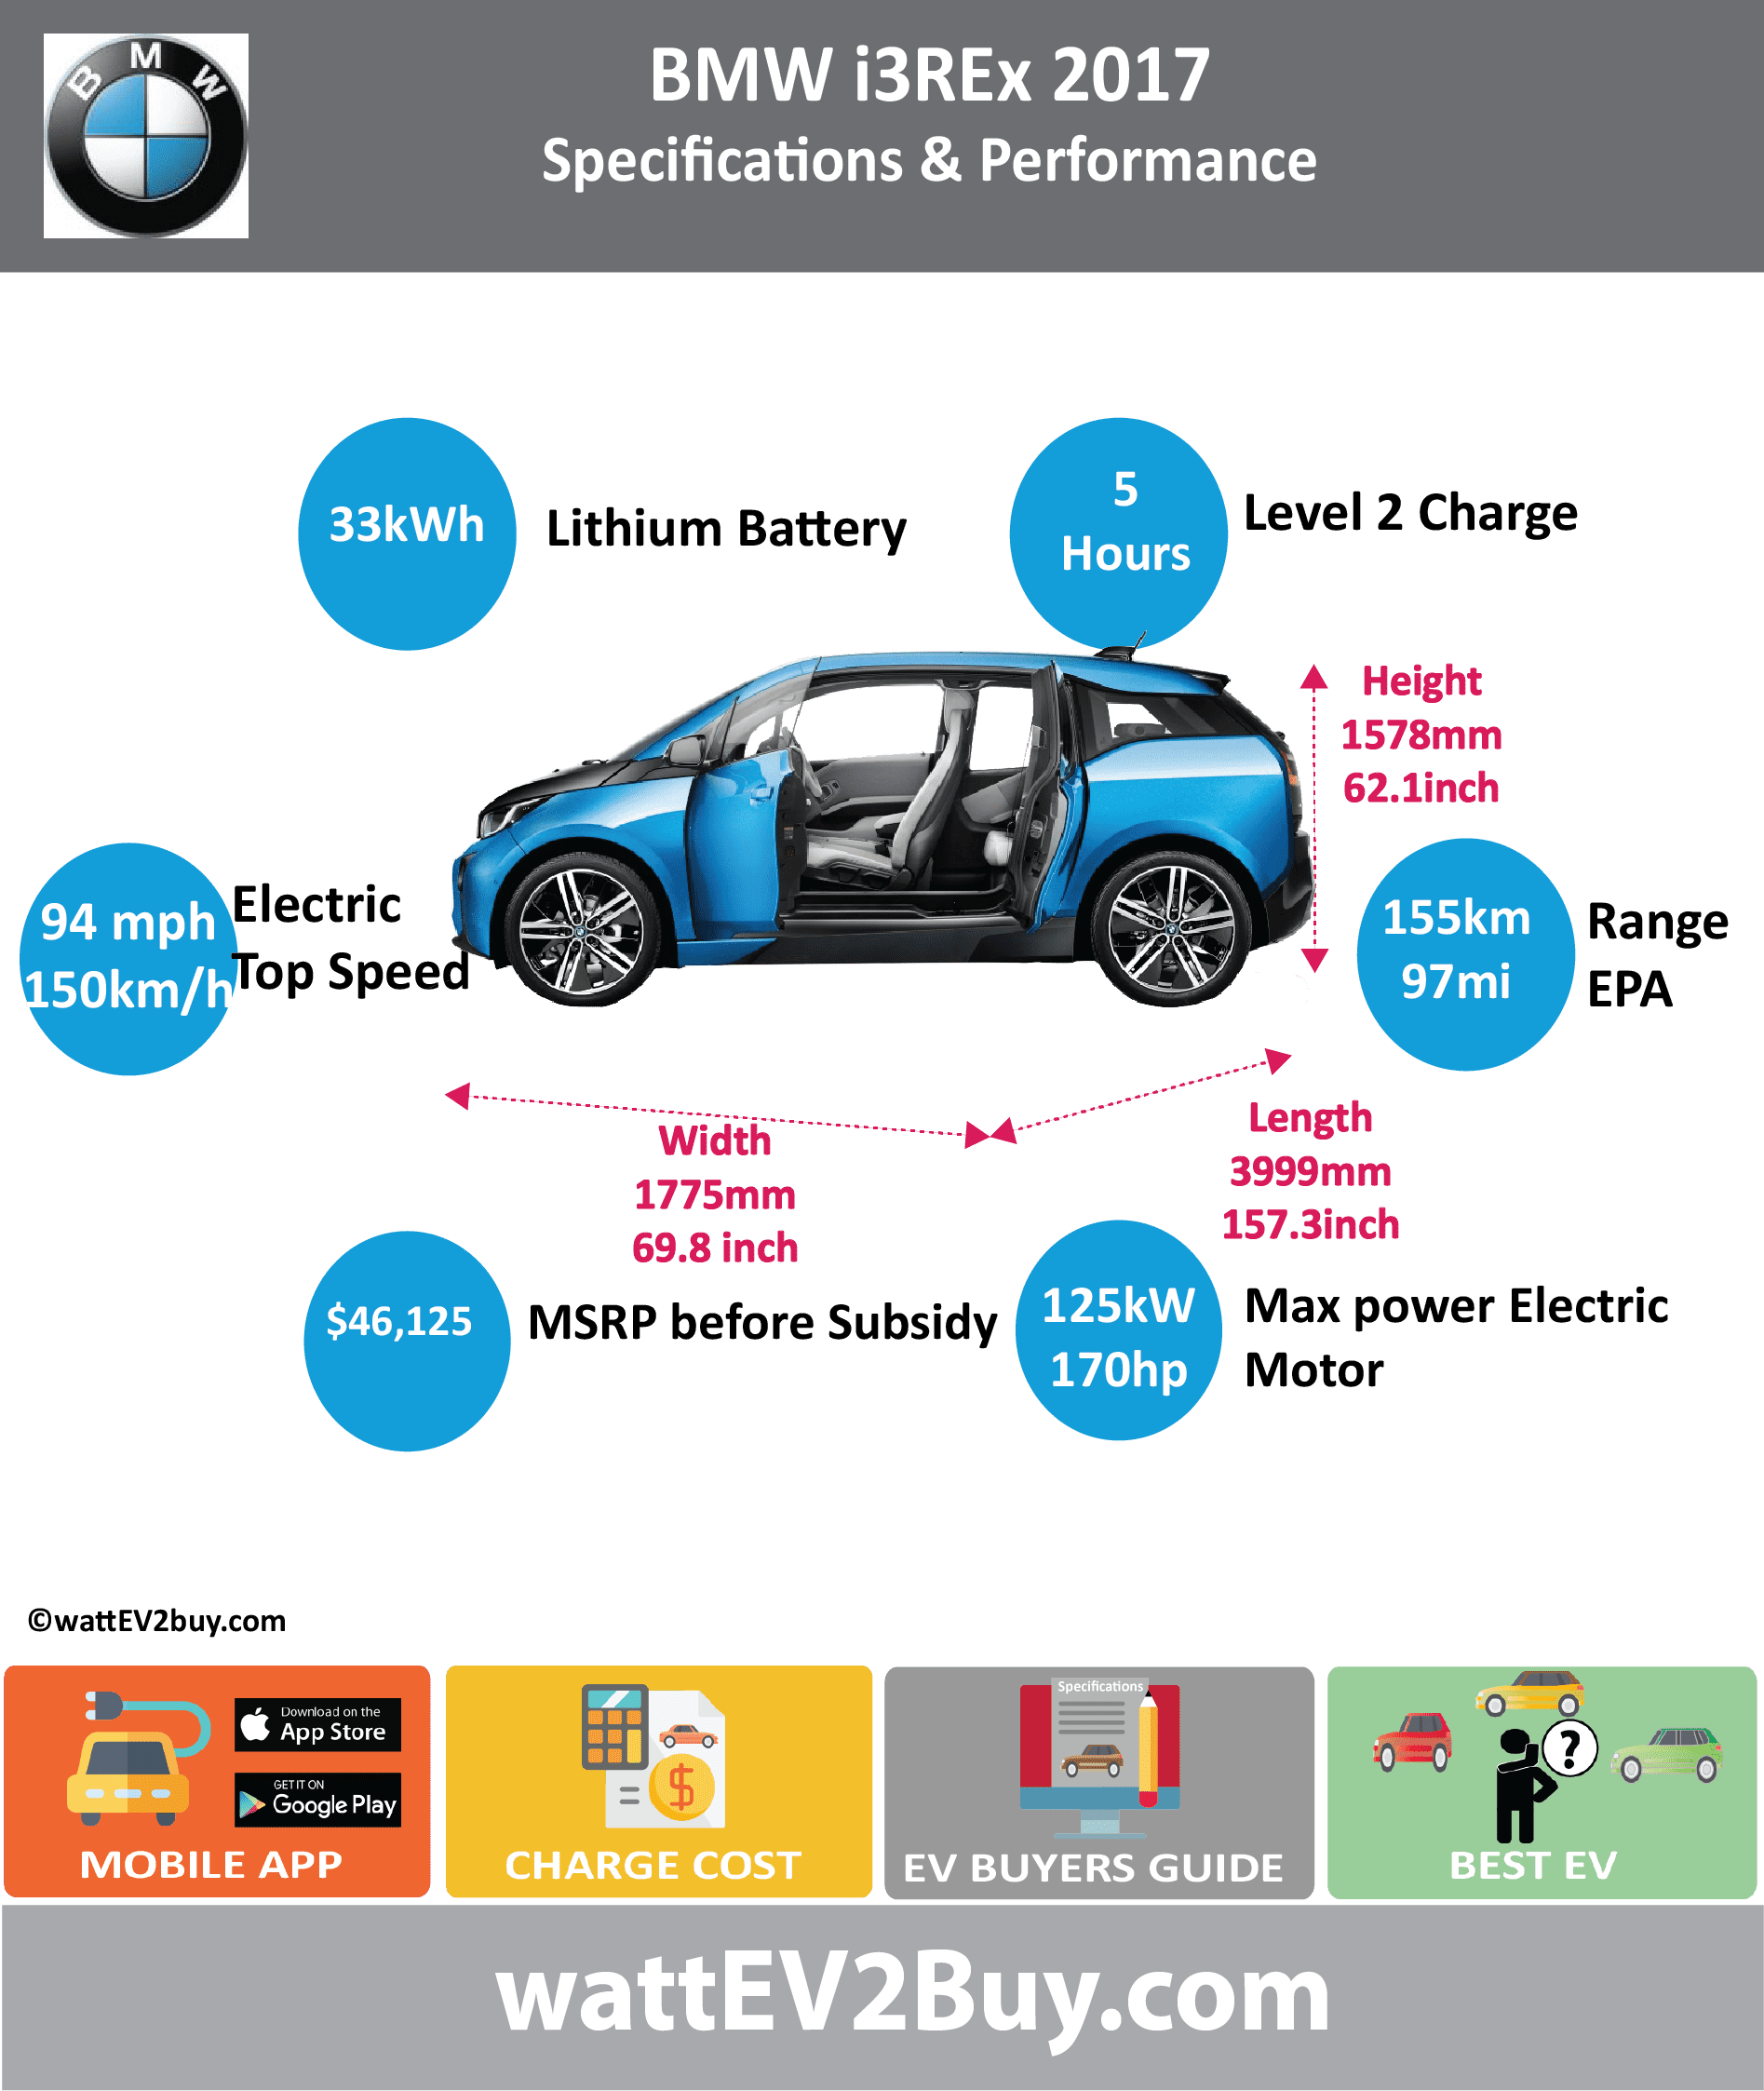 BMW i3 Rex EREV SPECS wattev2Buy.com 2016 2017 Battery Chemistry Battery Capacity kWh 22 33 Battery Nominal rating kWh 18.7 27 Voltage V Amps Ah 94 Cells Modules Cooling Cycles Depth of Discharge (DOD) Energy Density Wh/kg Battery Manufacturer Samsung SDI Battery Warranty - years Battery Electric Range - NEDC Mi Battery Electric Range - NEDC km Battery Electric Range - EPA Mi 68.8 97.0 Battery Electric Range - EPA km 110 155 Electric Top Speed - mph 93.75 Electric Top Speed - km/h 150 Acceleration 0 - 100km/h sec Onboard Charger kW 7.4 LV 1 Charge kW LV 1 Charge Time (Hours) 16 LV 2 Charge kW LV 2 Charge Time (Hours) 4 6 LV 3 CCS/Combo kW LV 3 Charge Time (min to 80%) Charge Connector SAE J1772 MPGe Combined - miles 111 MPGe Combined - km MPGe City - miles MPGe City - km MPGe Highway - miles MPGe Highway - km Max Power - hp 170 Max Power - kW 125 Max Torque - lb.ft 184 Max Torque - N.m 250 Electric Motor Rear Electric Motor Front Electric Motor Output Transmission Energy Consumption kWh/100km MSRP (before incentives & destination) $48,350 Vehicle Doors Seating Dimensions GVWR (kg) Curb Weight (kg) Payload Capacity (lbs) Towing Capacity (lbs) Ground Clearance (mm) Lenght (mm) 3999 Width (mm) 1775 Height (mm) 1578 Wheelbase (mm) 2570 Lenght (inc) 157.3 Width (inc) 69.8 Height (inc) 62.1 Wheelbase (inc) 101.1 Other Market Class First Delivery Safety Level Combustion Extended Range - mile 180 Extended Range - km 288 ICE Max Power - hp ICE Max Power - kW ICE Max Torque - lb.ft ICE Max Torque - N.m ICE Top speed - mph ICE Top speed - km/h ICE Acceleration 0 - 62mph sec ICE MPGe Combined - miles 35 ICE MPGe Combined - km ICE MPGe City - miles ICE MPGe City - km ICE MPGe Highway - miles ICE MPGe Highway - km ICE Transmission ICE Fuel Consumption l/100km ICE Emission Rating ICE Emissions CO2/mi grams ICE Emissions CO2/km grams Total System Max Power - hp Max Power - kW Max Torque - lb.ft Max Torque - N.m Fuel Consumption l/100km MPGe Combined - miles